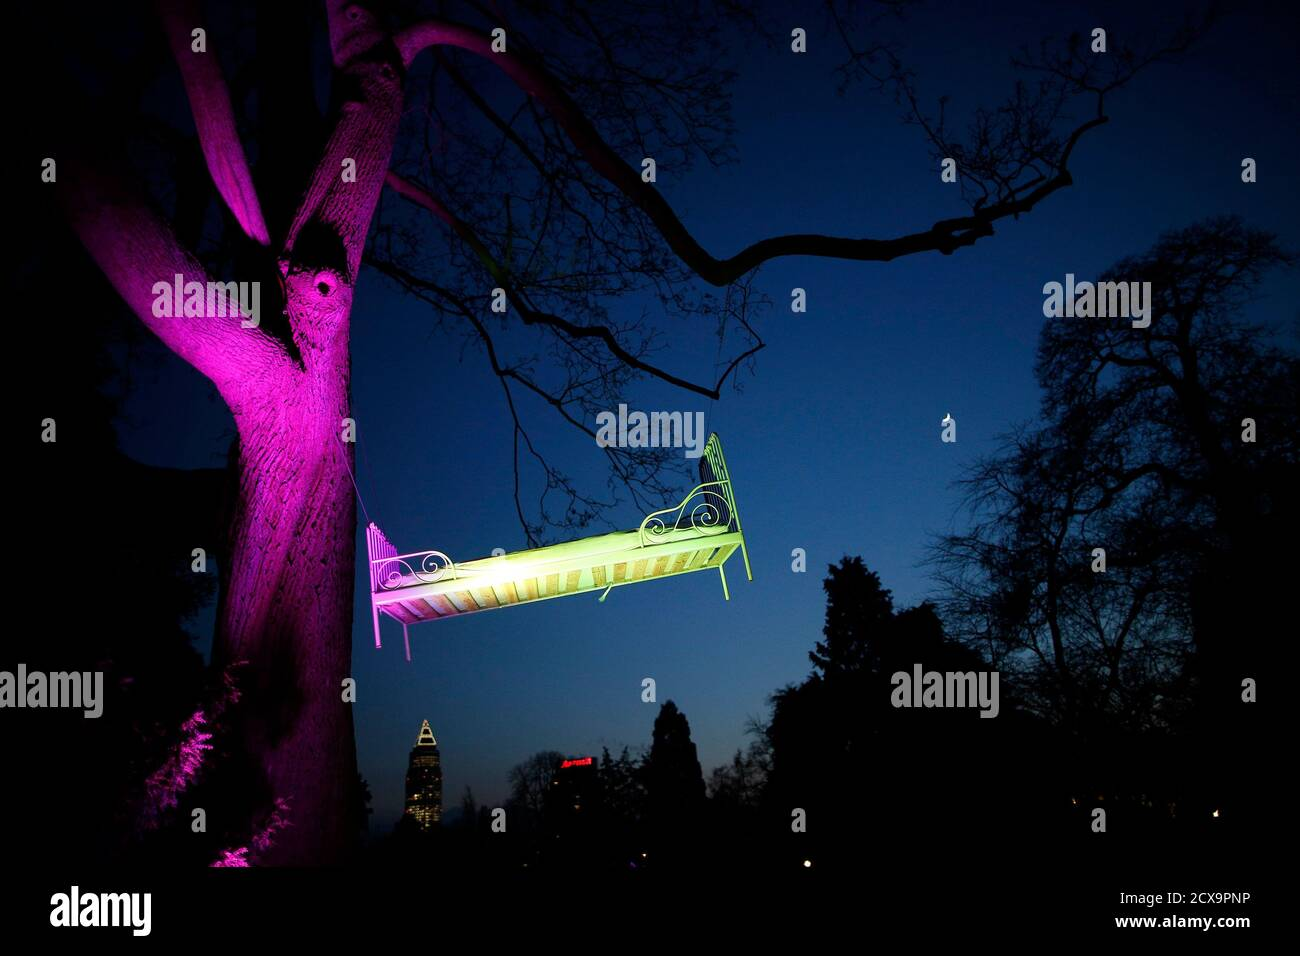 "A light installation by artist Wolfgang Flammersfeld is pictured at Palmengarten during the exhibition ""Winterlicht"" (winter light) in Frankfurt January 14, 2013. REUTERS/Lisi Niesner  (GERMANY - Tags: SOCIETY) Stock Photo"